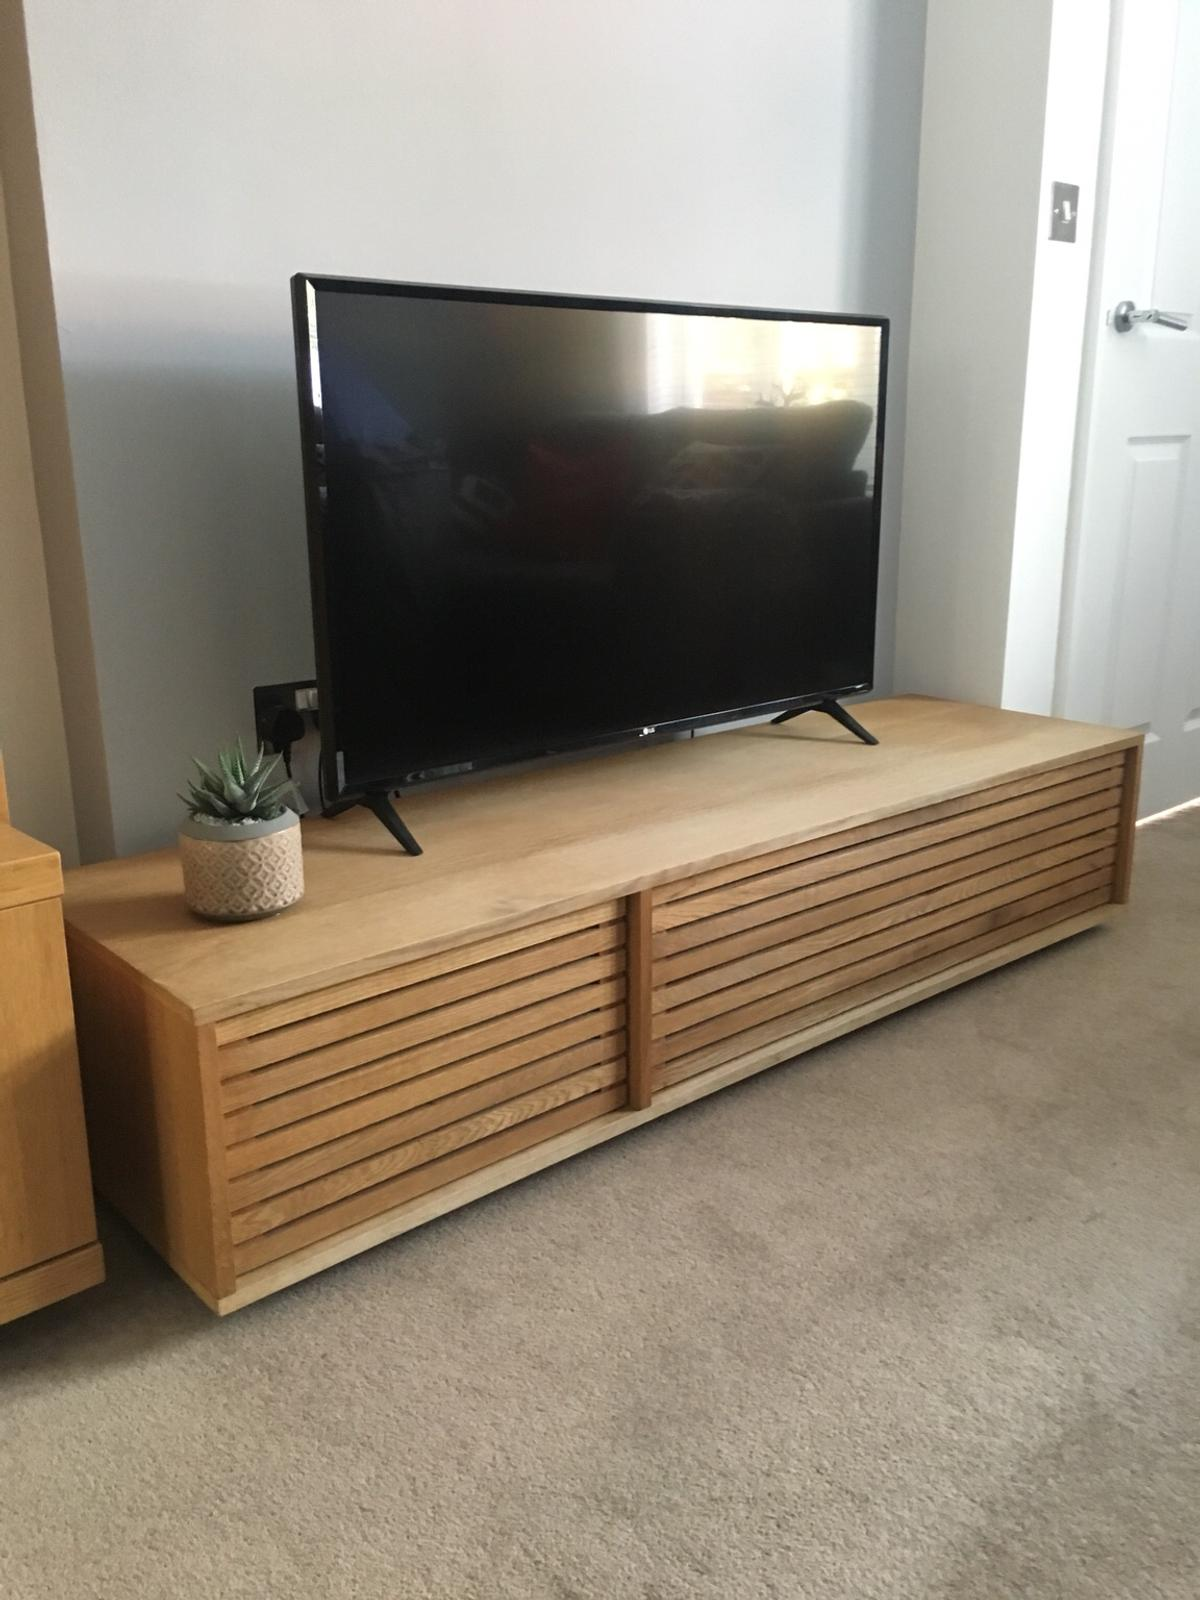 Habitat MAX Oiled oak large TV stand in LS13 Leeds for £125 00 for